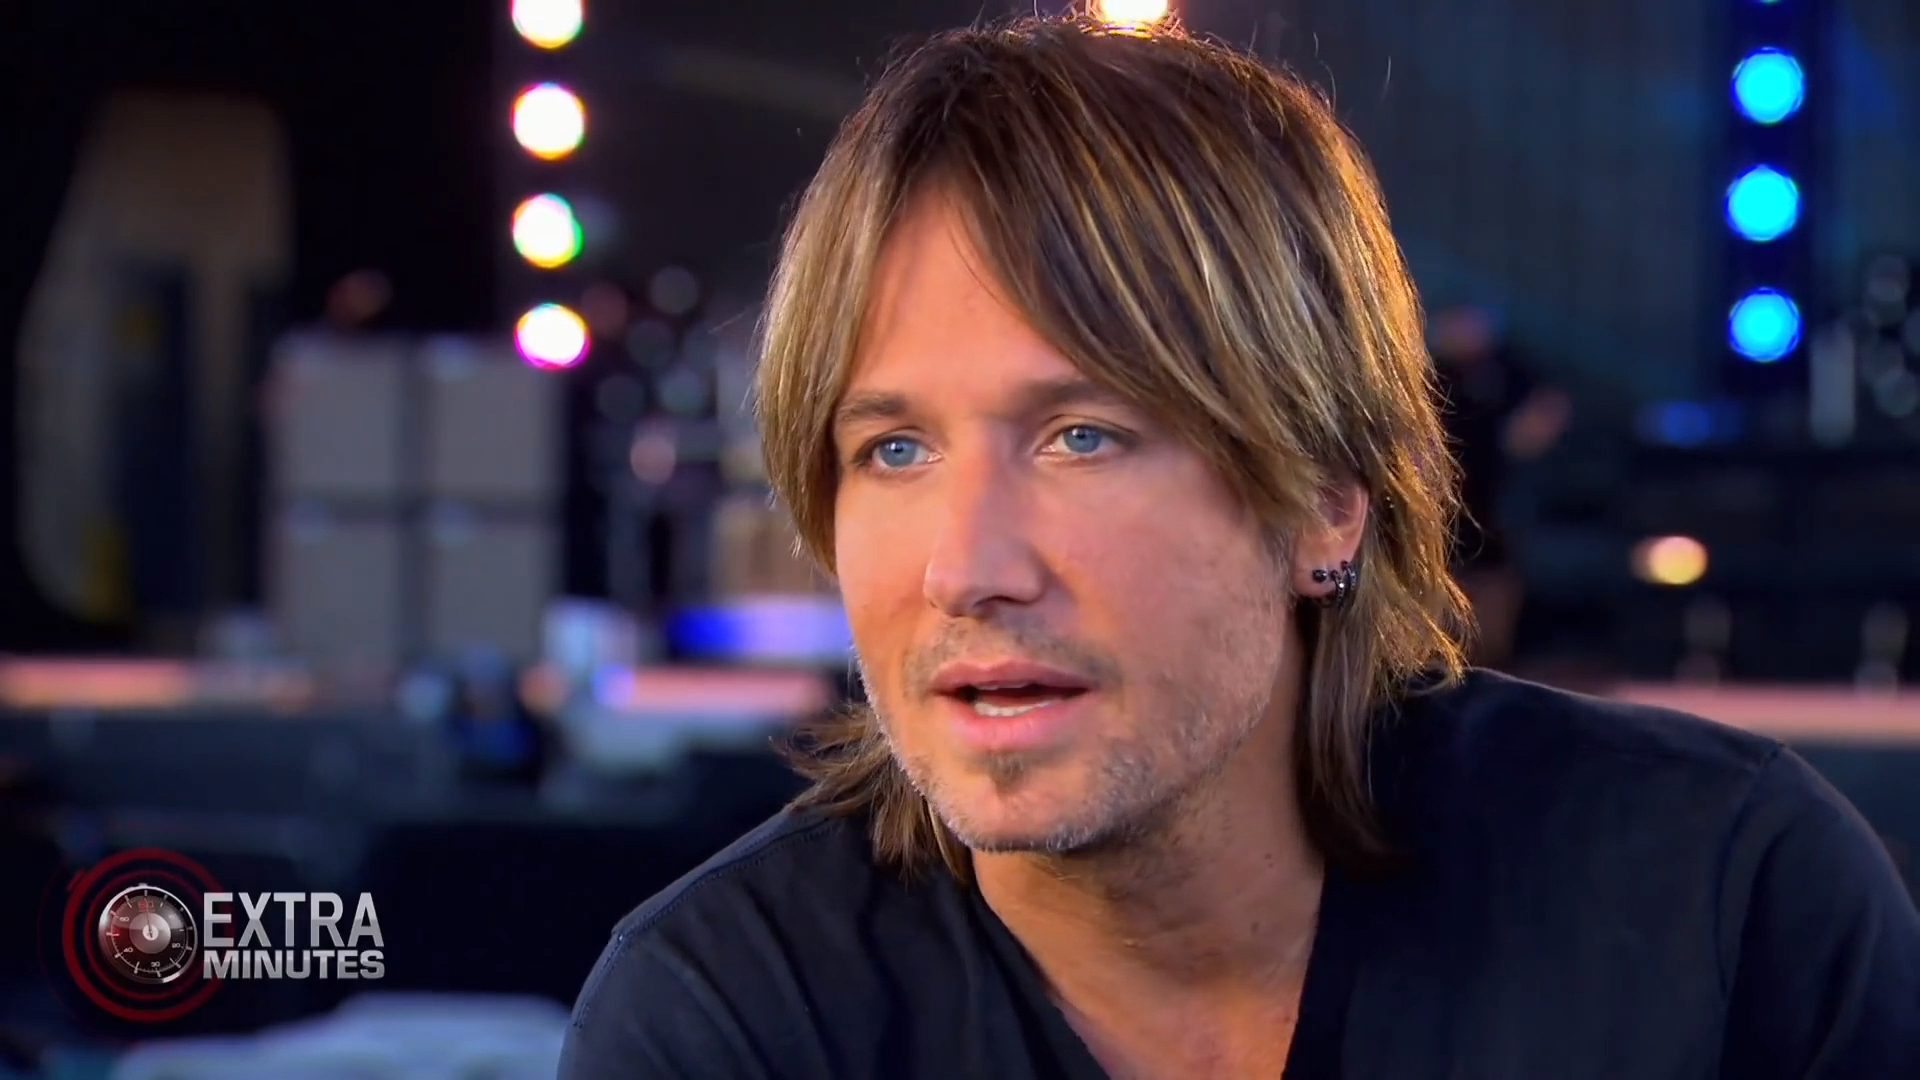 Keith Urban says he loves coming home to Australia